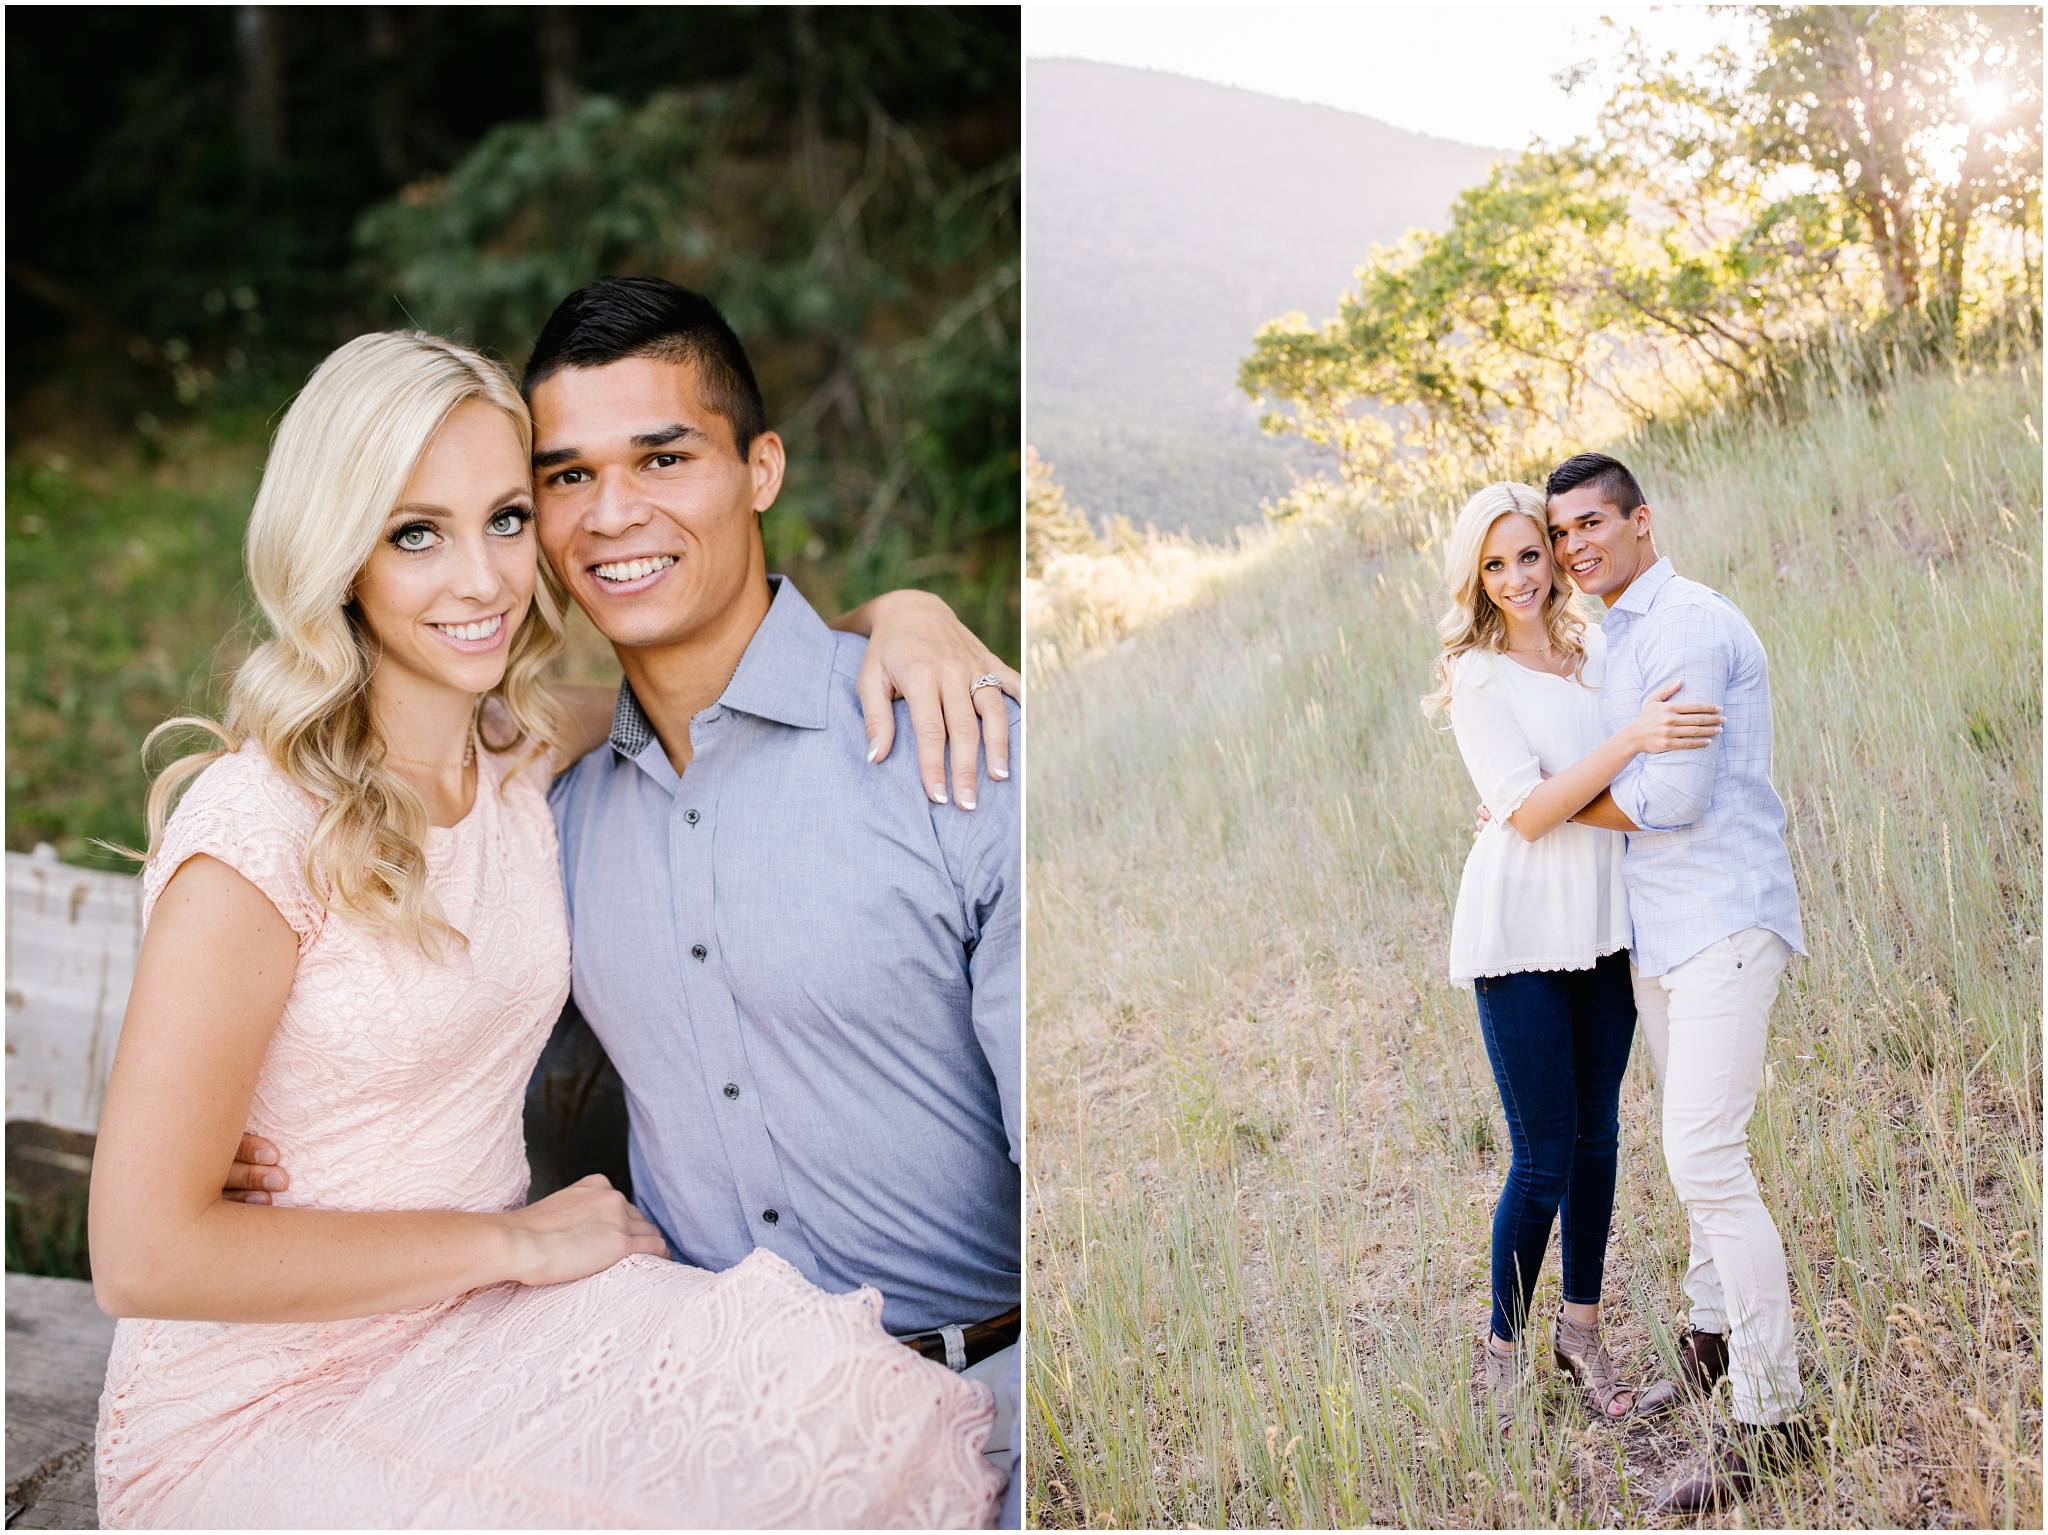 HCengagements-117_Lizzie-B-Imagery-Utah-Wedding-Photographer-Central-Utah-Park-City-Salt-Lake-City-Payson-Canyon-Engagement-Session.jpg